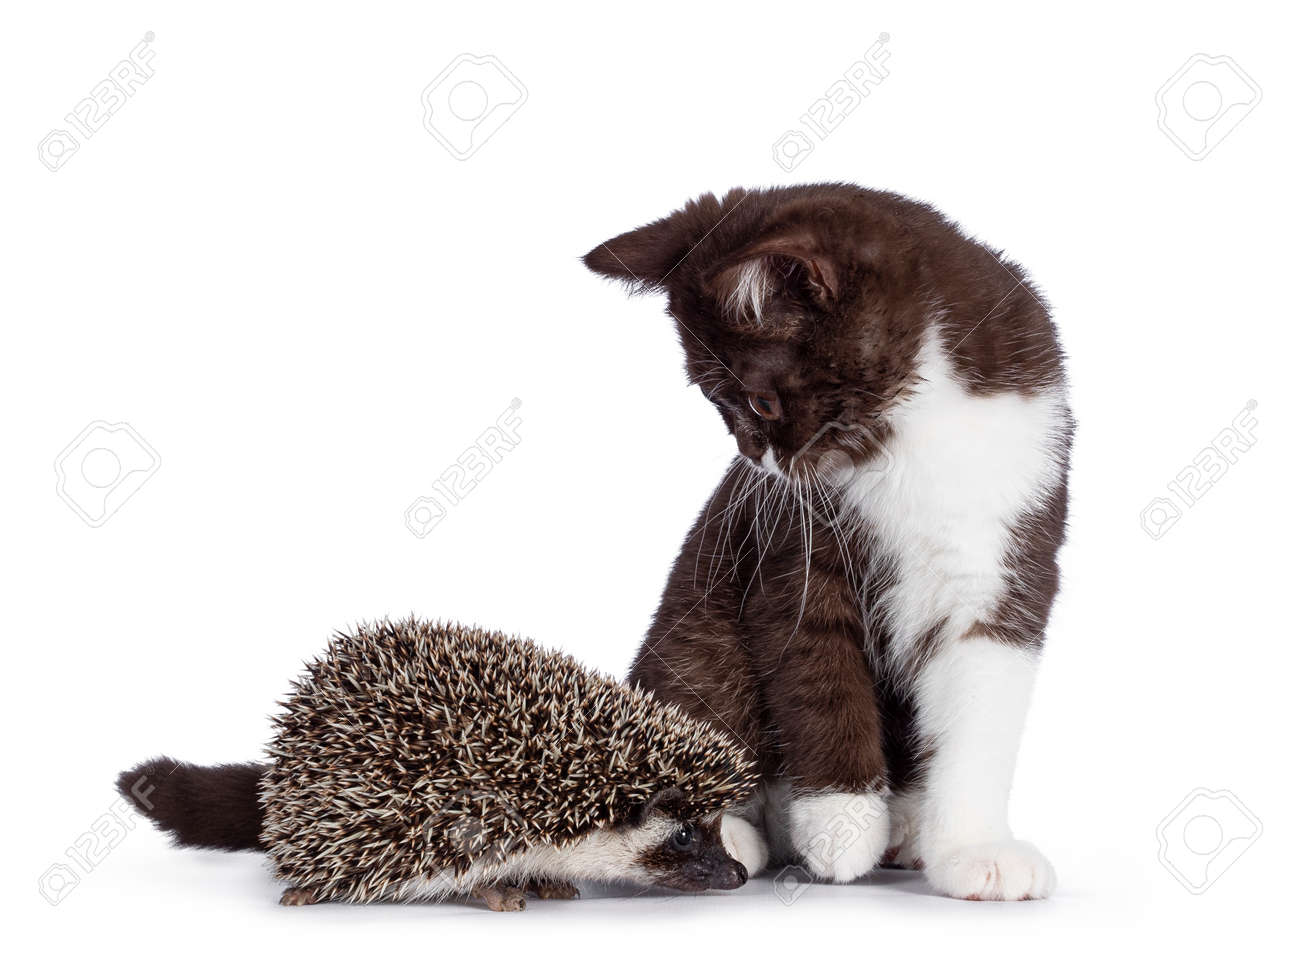 Cute brown with white British Shorthair cat kitten looking at full mask African Pygme Hedgehog, standing facing front. Looking straight to camera. Isolated on white background. - 173425167